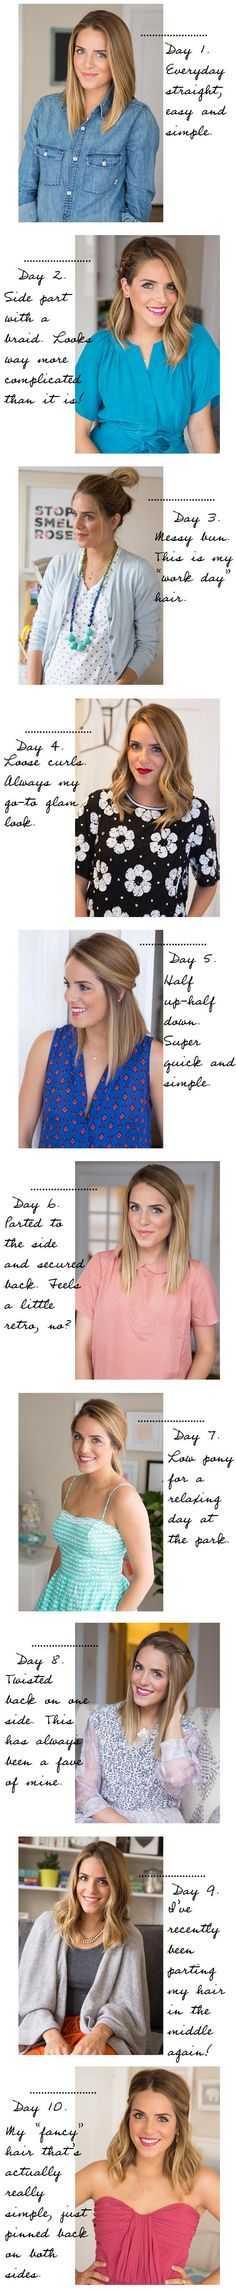 Try new hairstyles for summer! 10 super chic and pretty ways to wear your hair courtesy of @Julia Engel. - LOVE her haircut